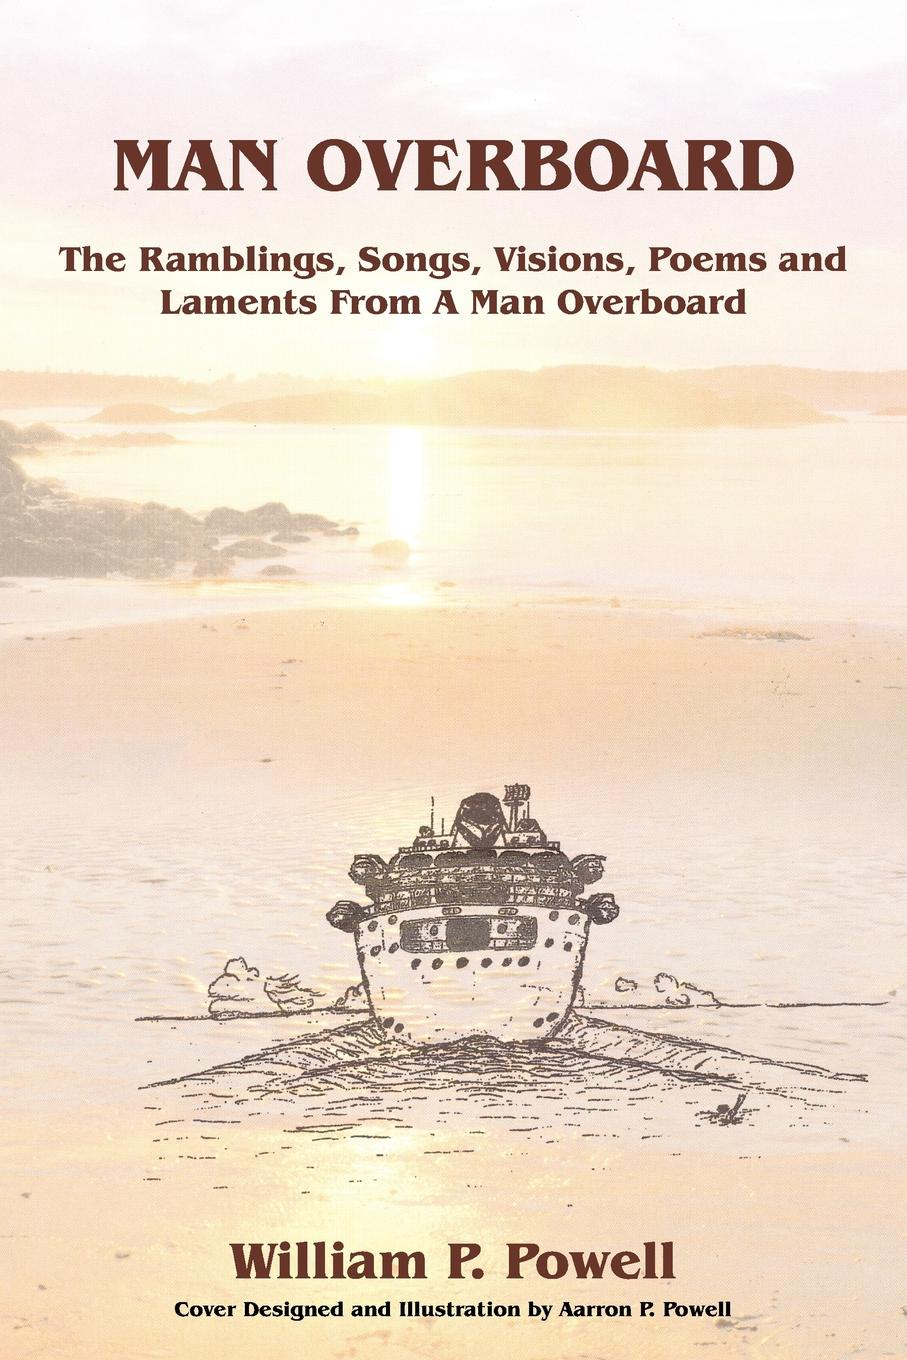 William P. Powell MAN OVERBOARD. The Ramblings, Songs, Visions, Poems and Laments From A Man Overboard maryann p diedwardo pennsylvania voices book two appaloosa visions